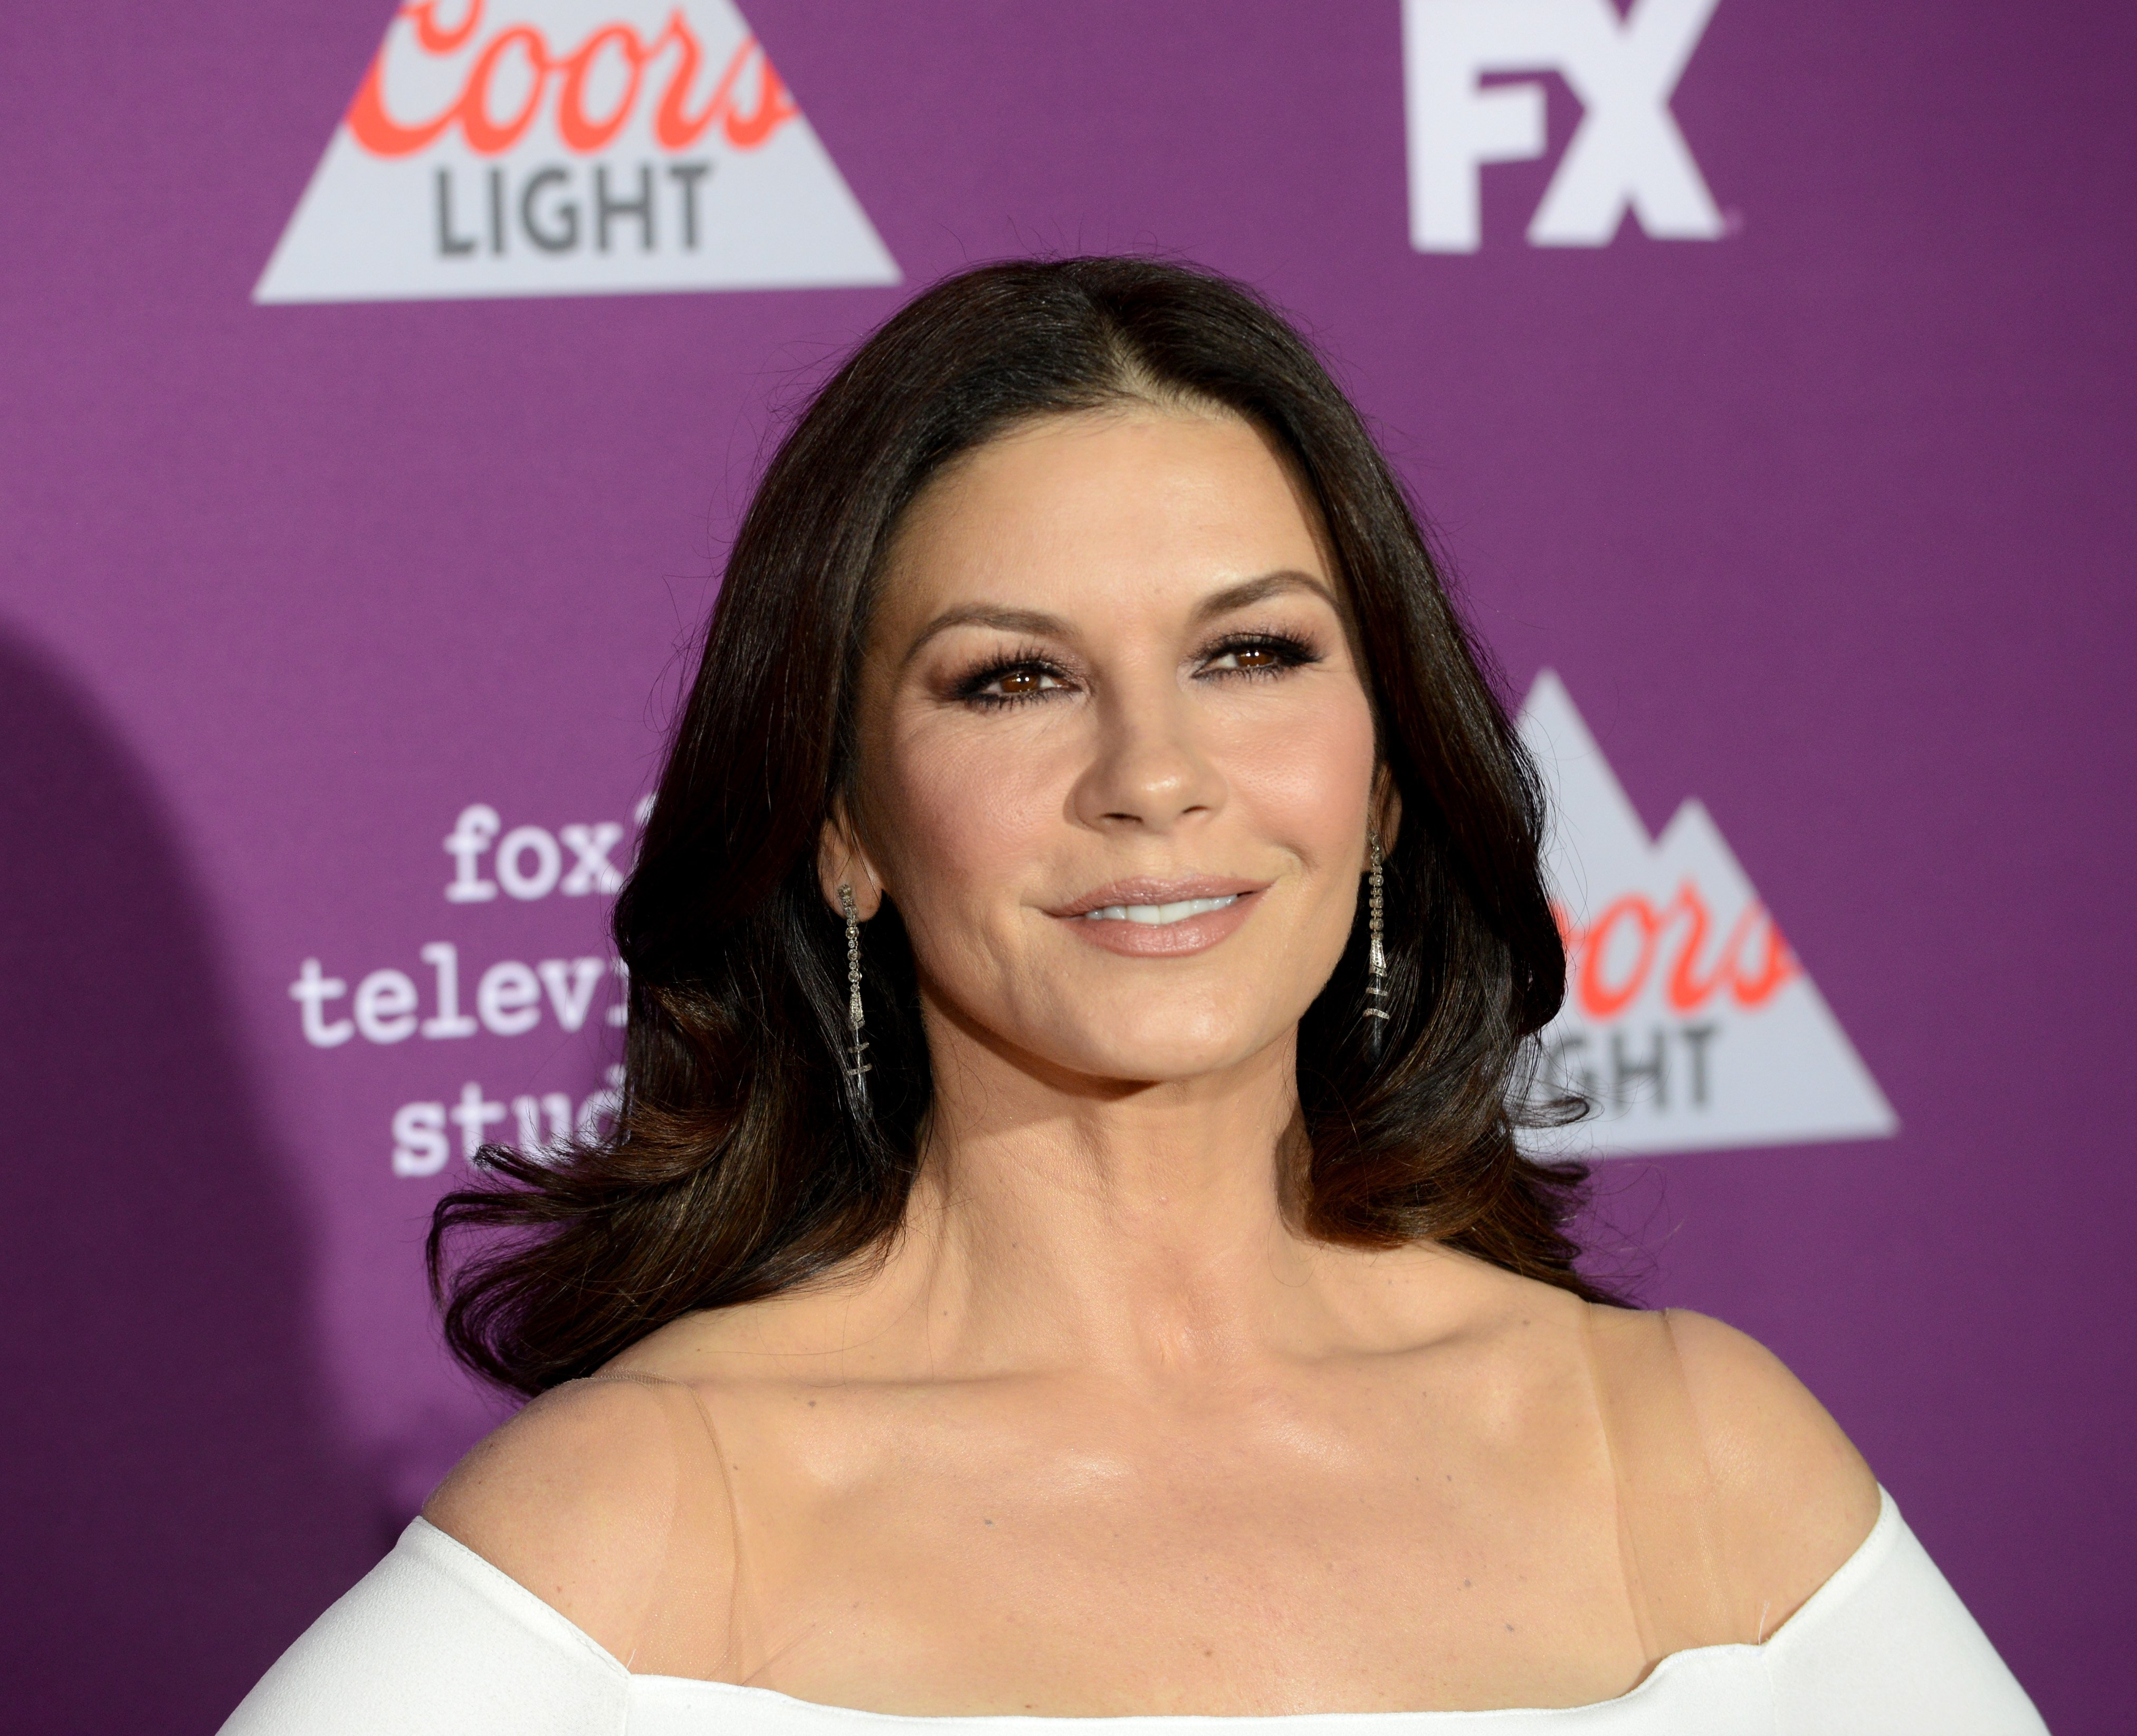 Catherine Zeta-Jones during a 2017 premiere in Hollywood. | Photo: Getty Images